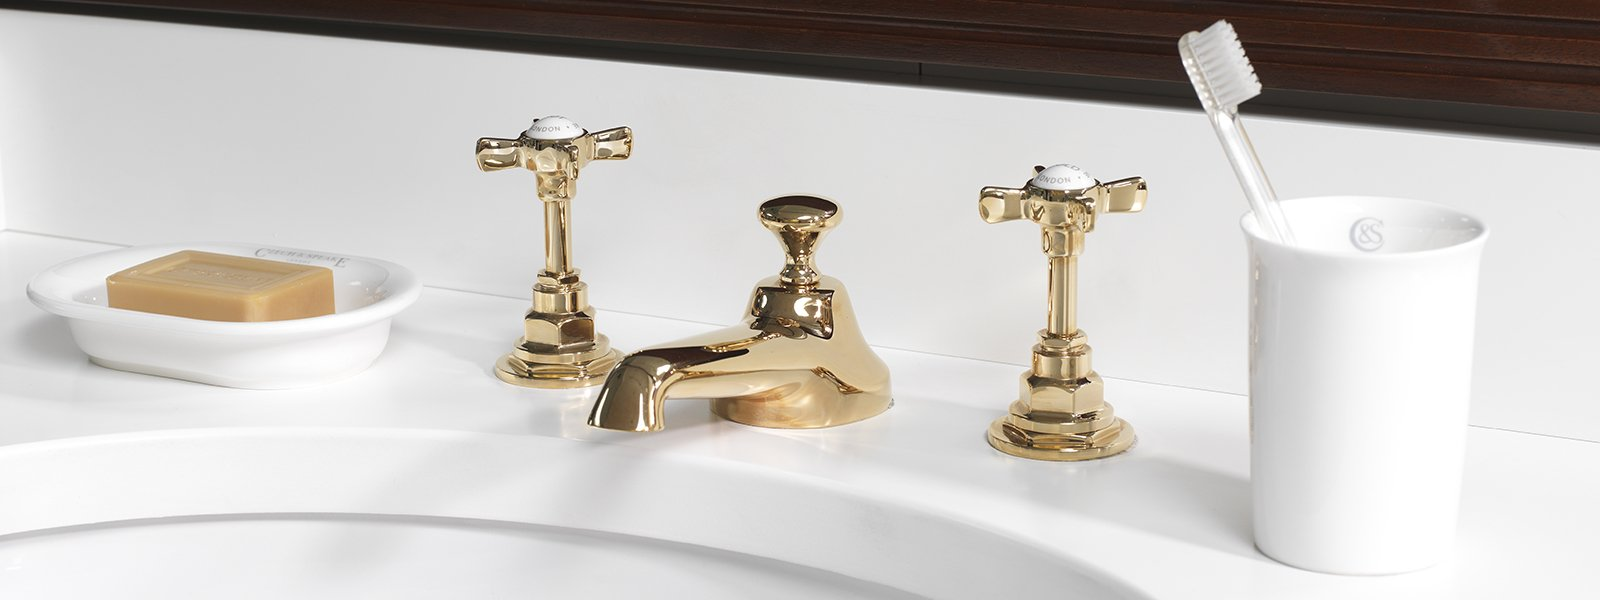 czech & speake deco widespread lav faucet with low spout and tall cross handles with porcelain inset in unlacquered brass - the ultimate guide to luxury plumbing by the delight of design